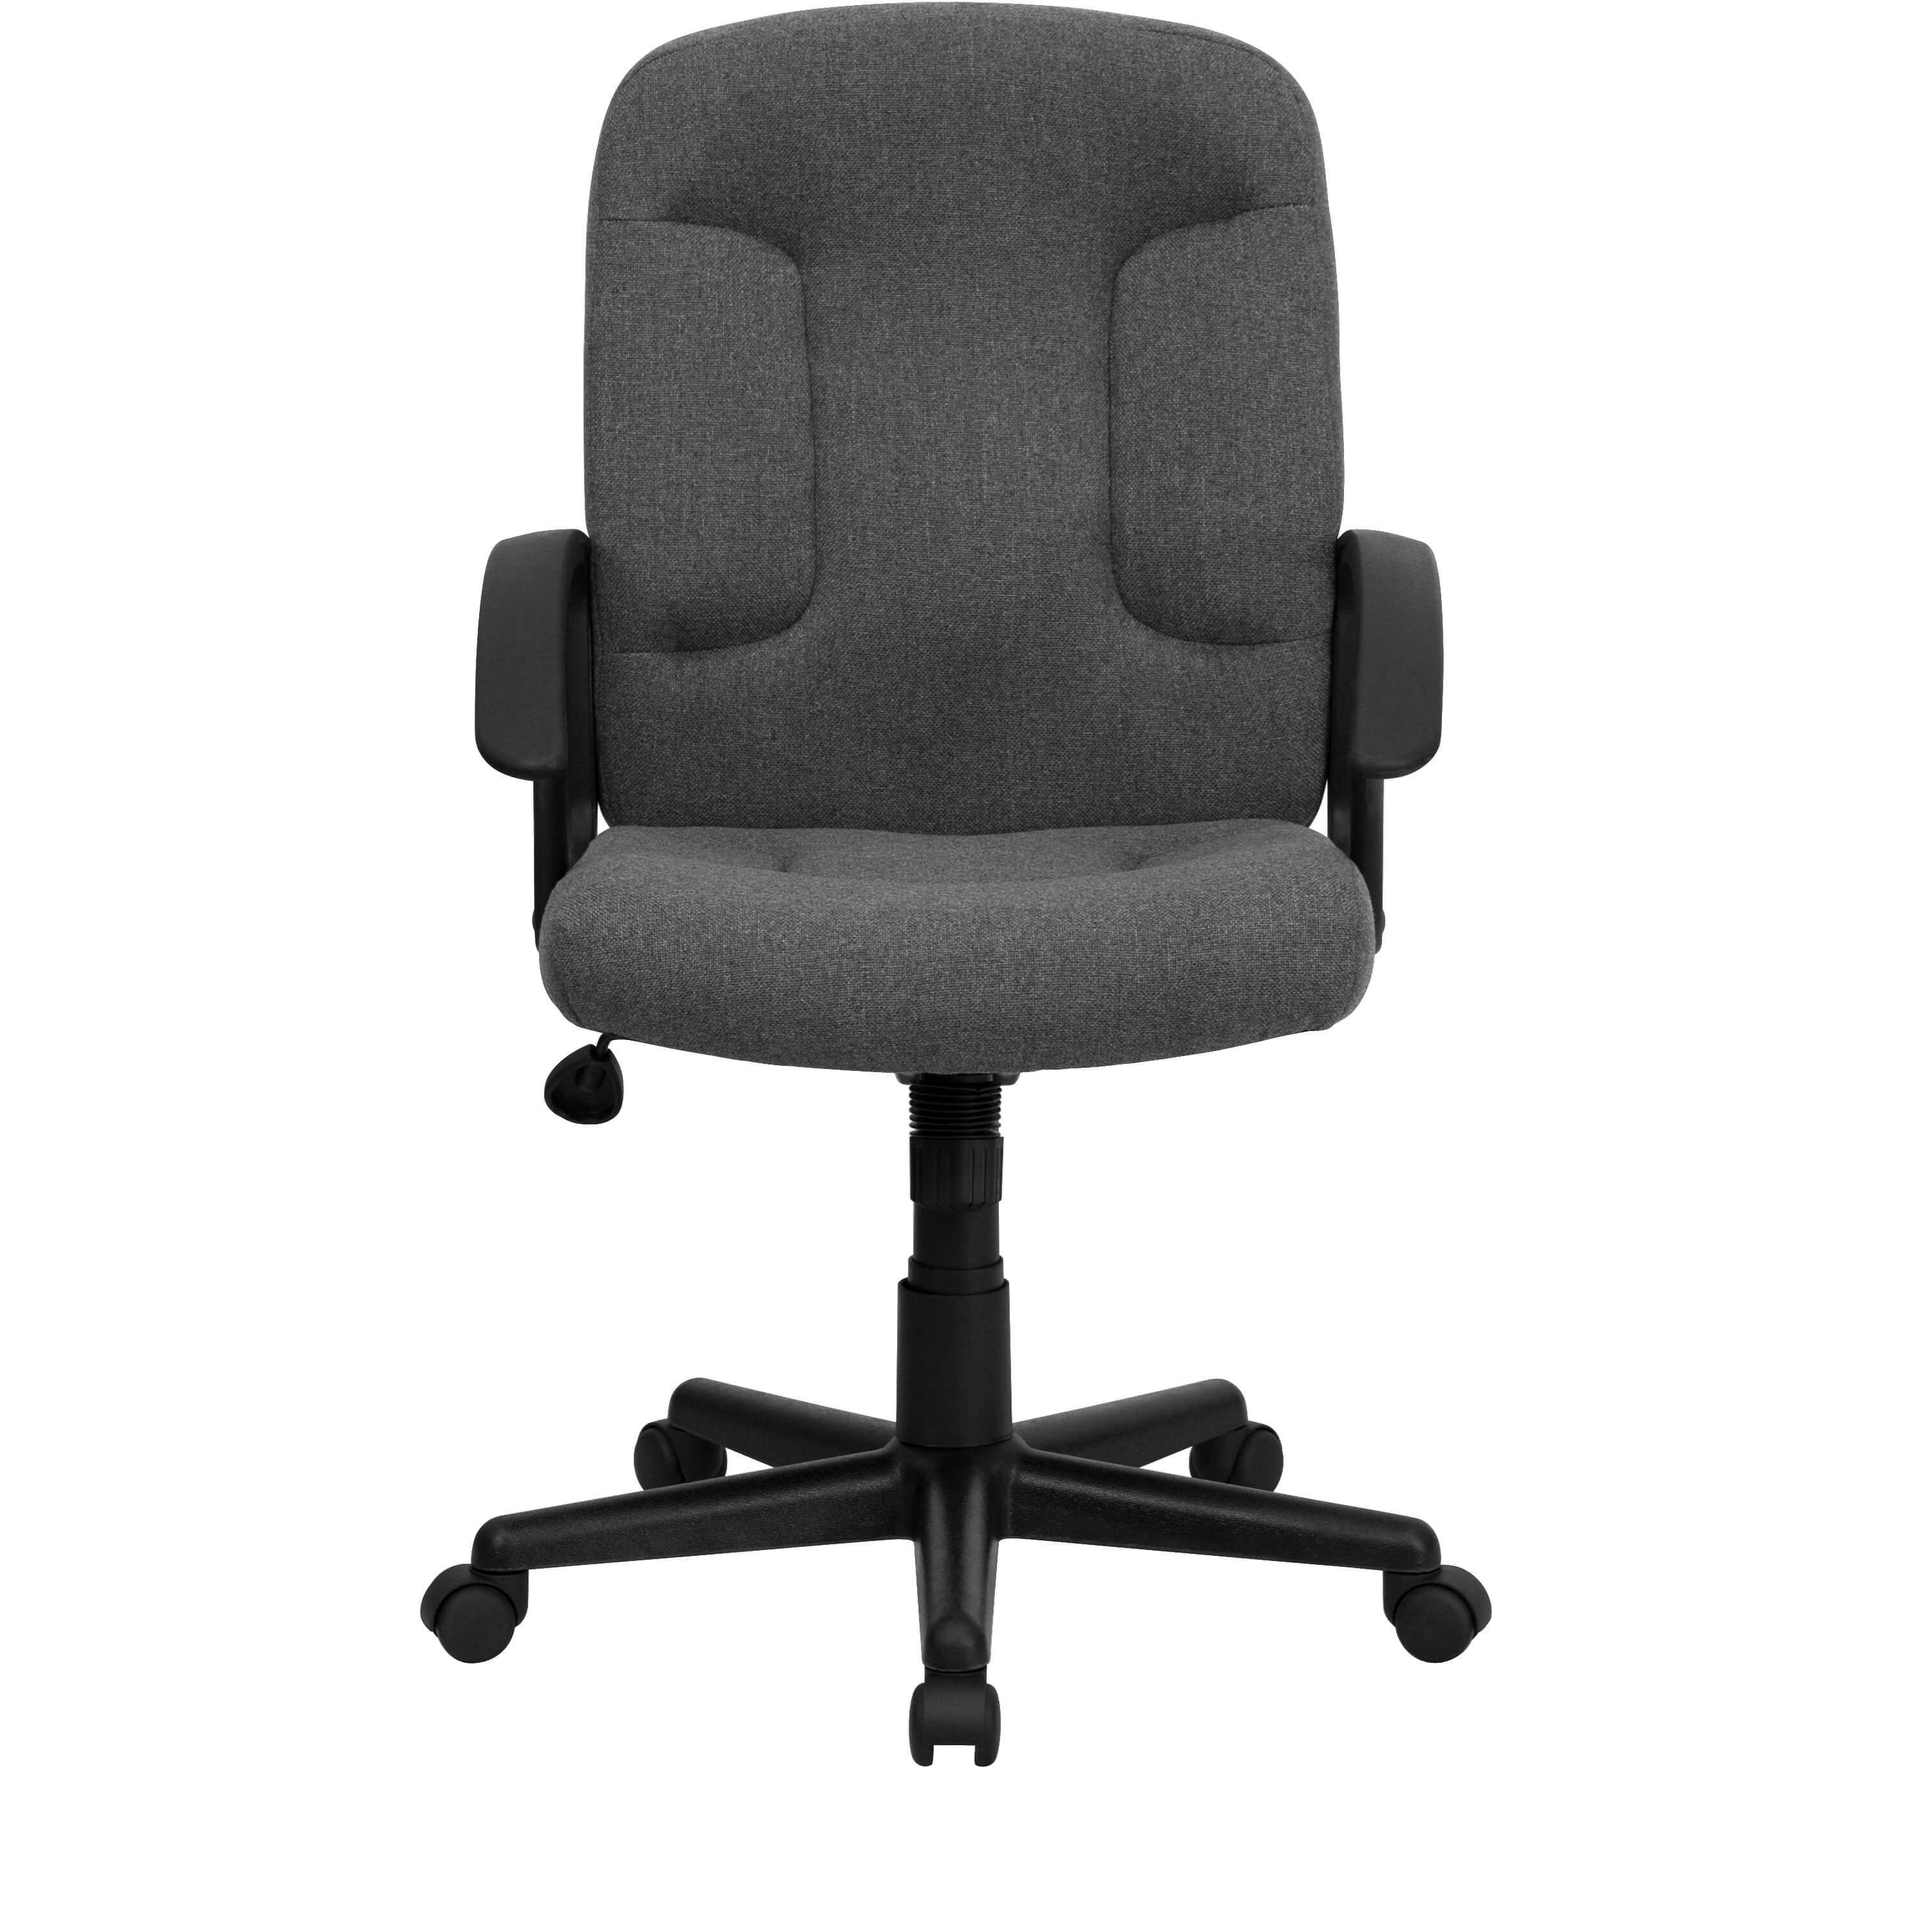 Cool desk chairs CUB GO ST 6 GY GG FLA